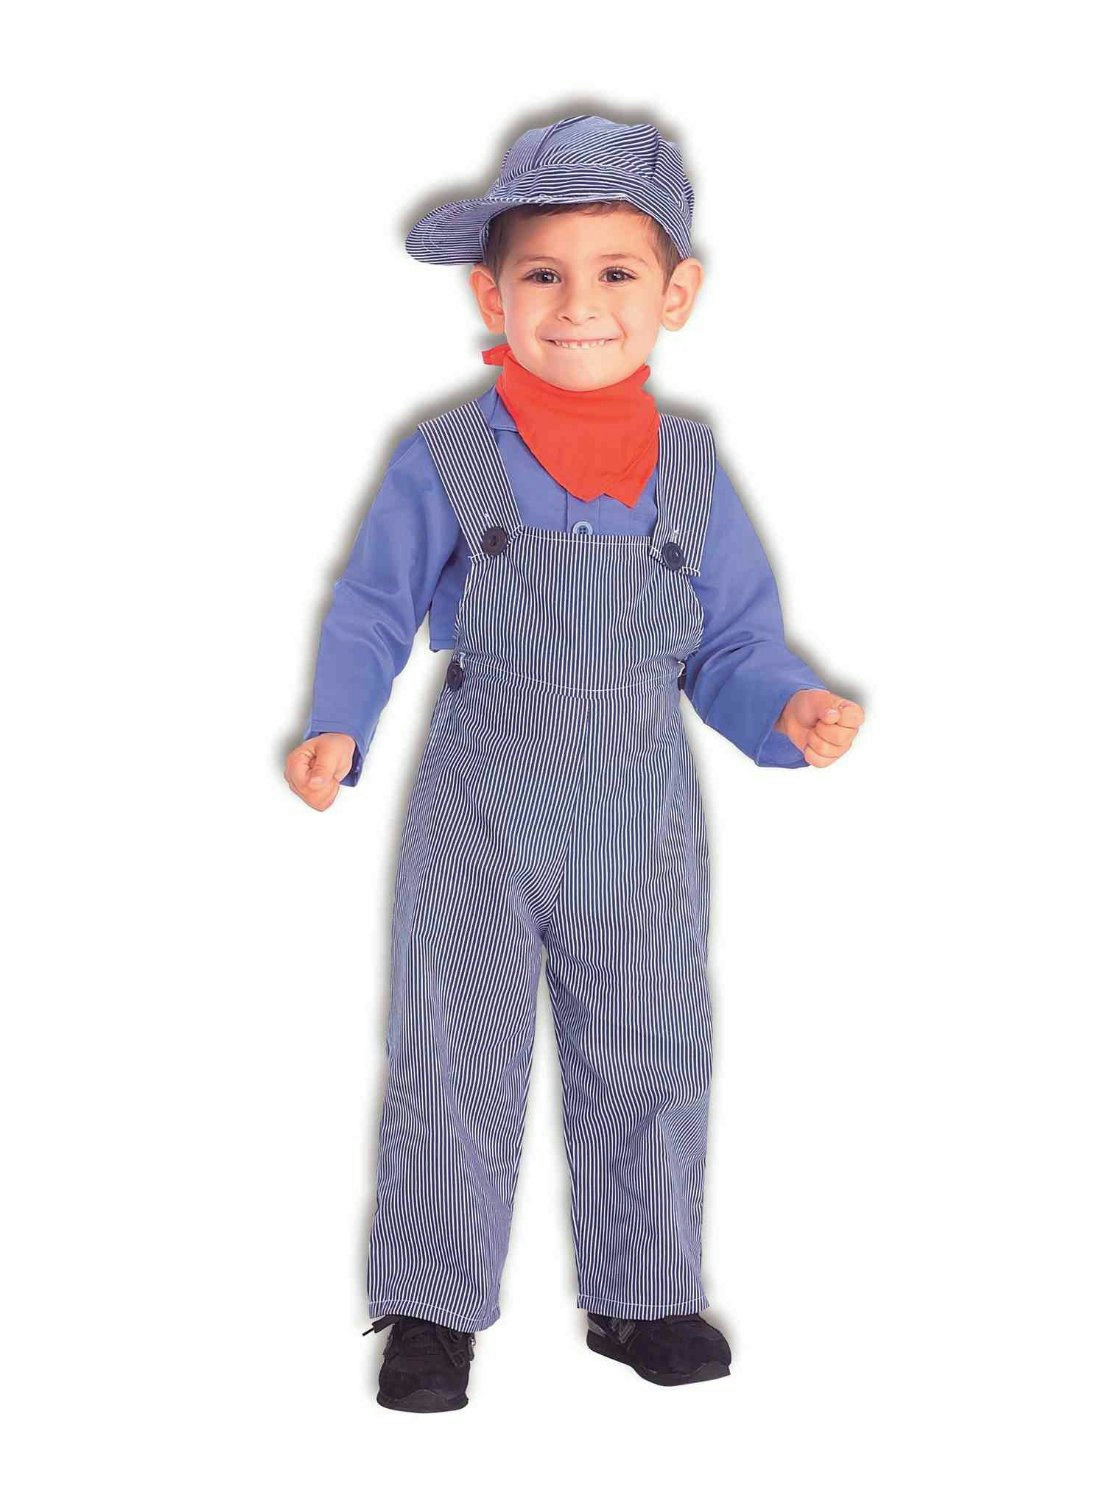 Lil Engineer Train Conductor Child Costume Toddler Size 2-4